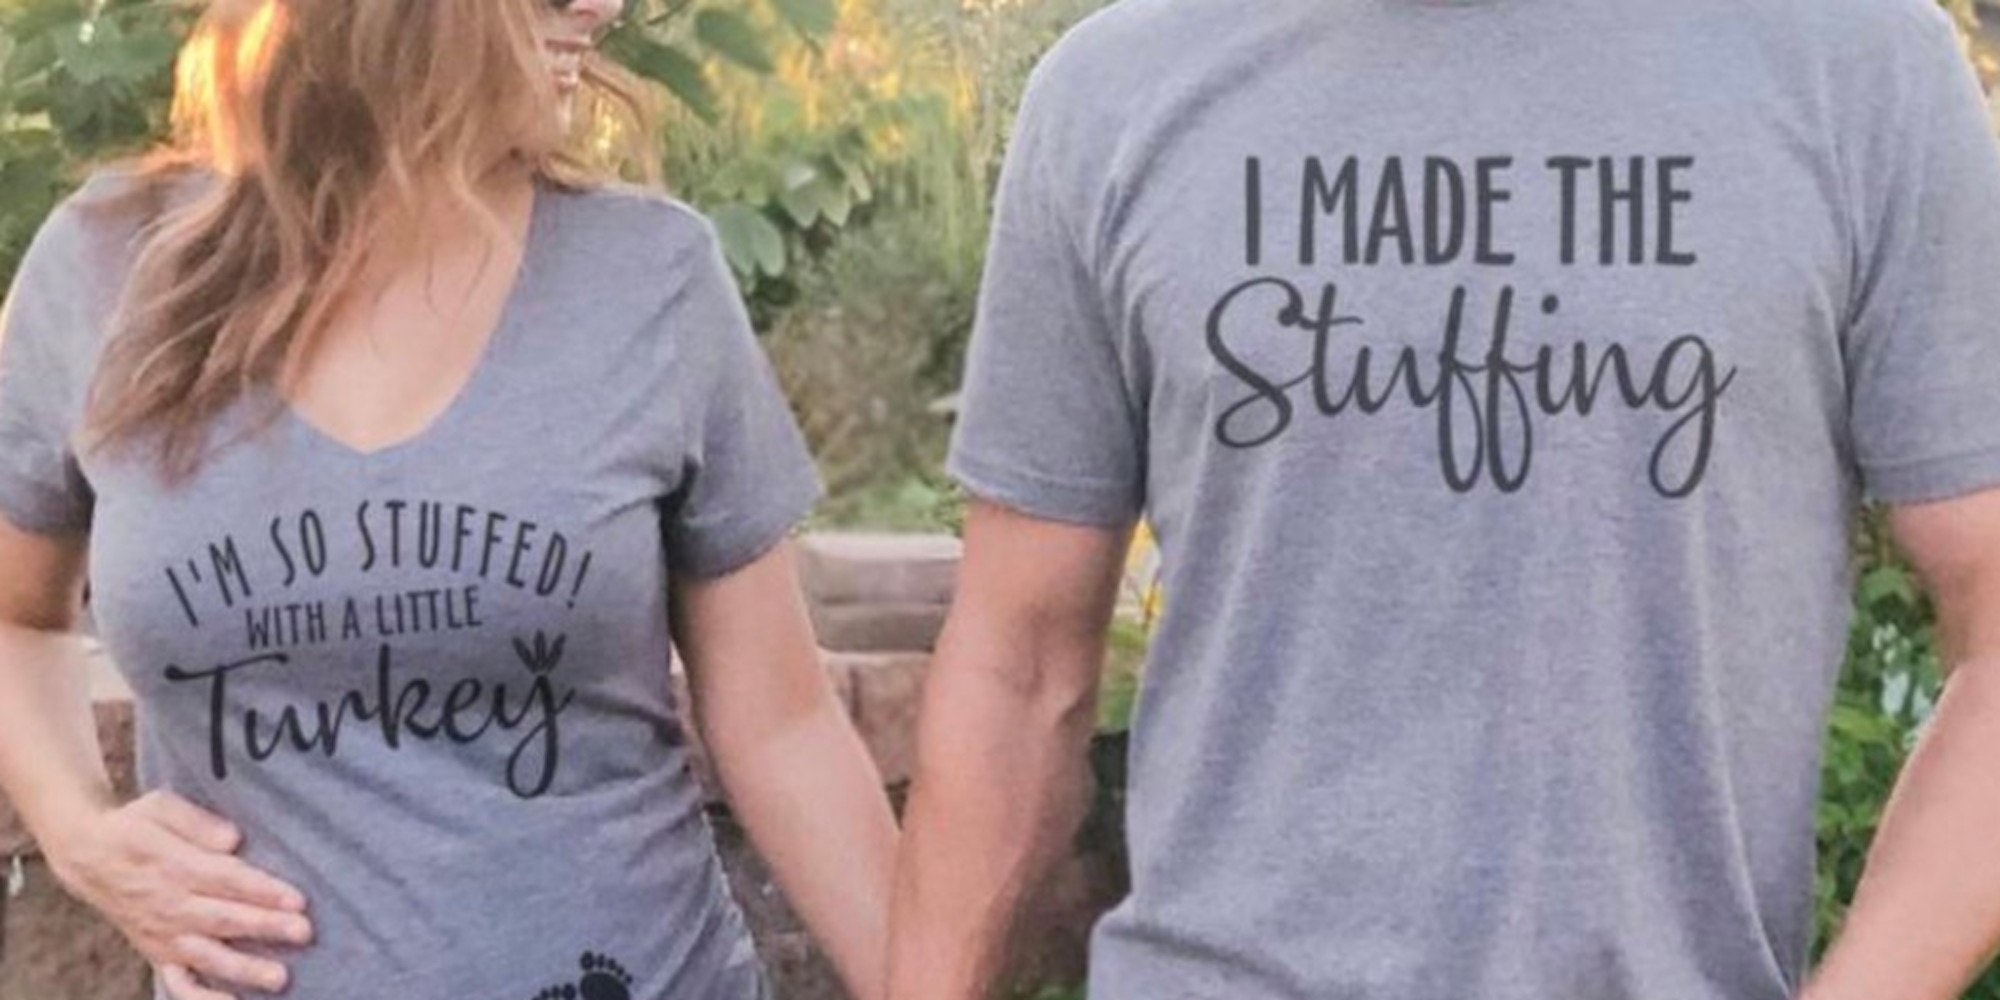 """a white pregnant woman with wavy blonde hair wearing a grey t-shirt saying """"I'm so stuffed with a little turkey"""" and a pair of baby footprints, she's smiling at a man in a matching shirt that says """"I made the stuffing"""""""